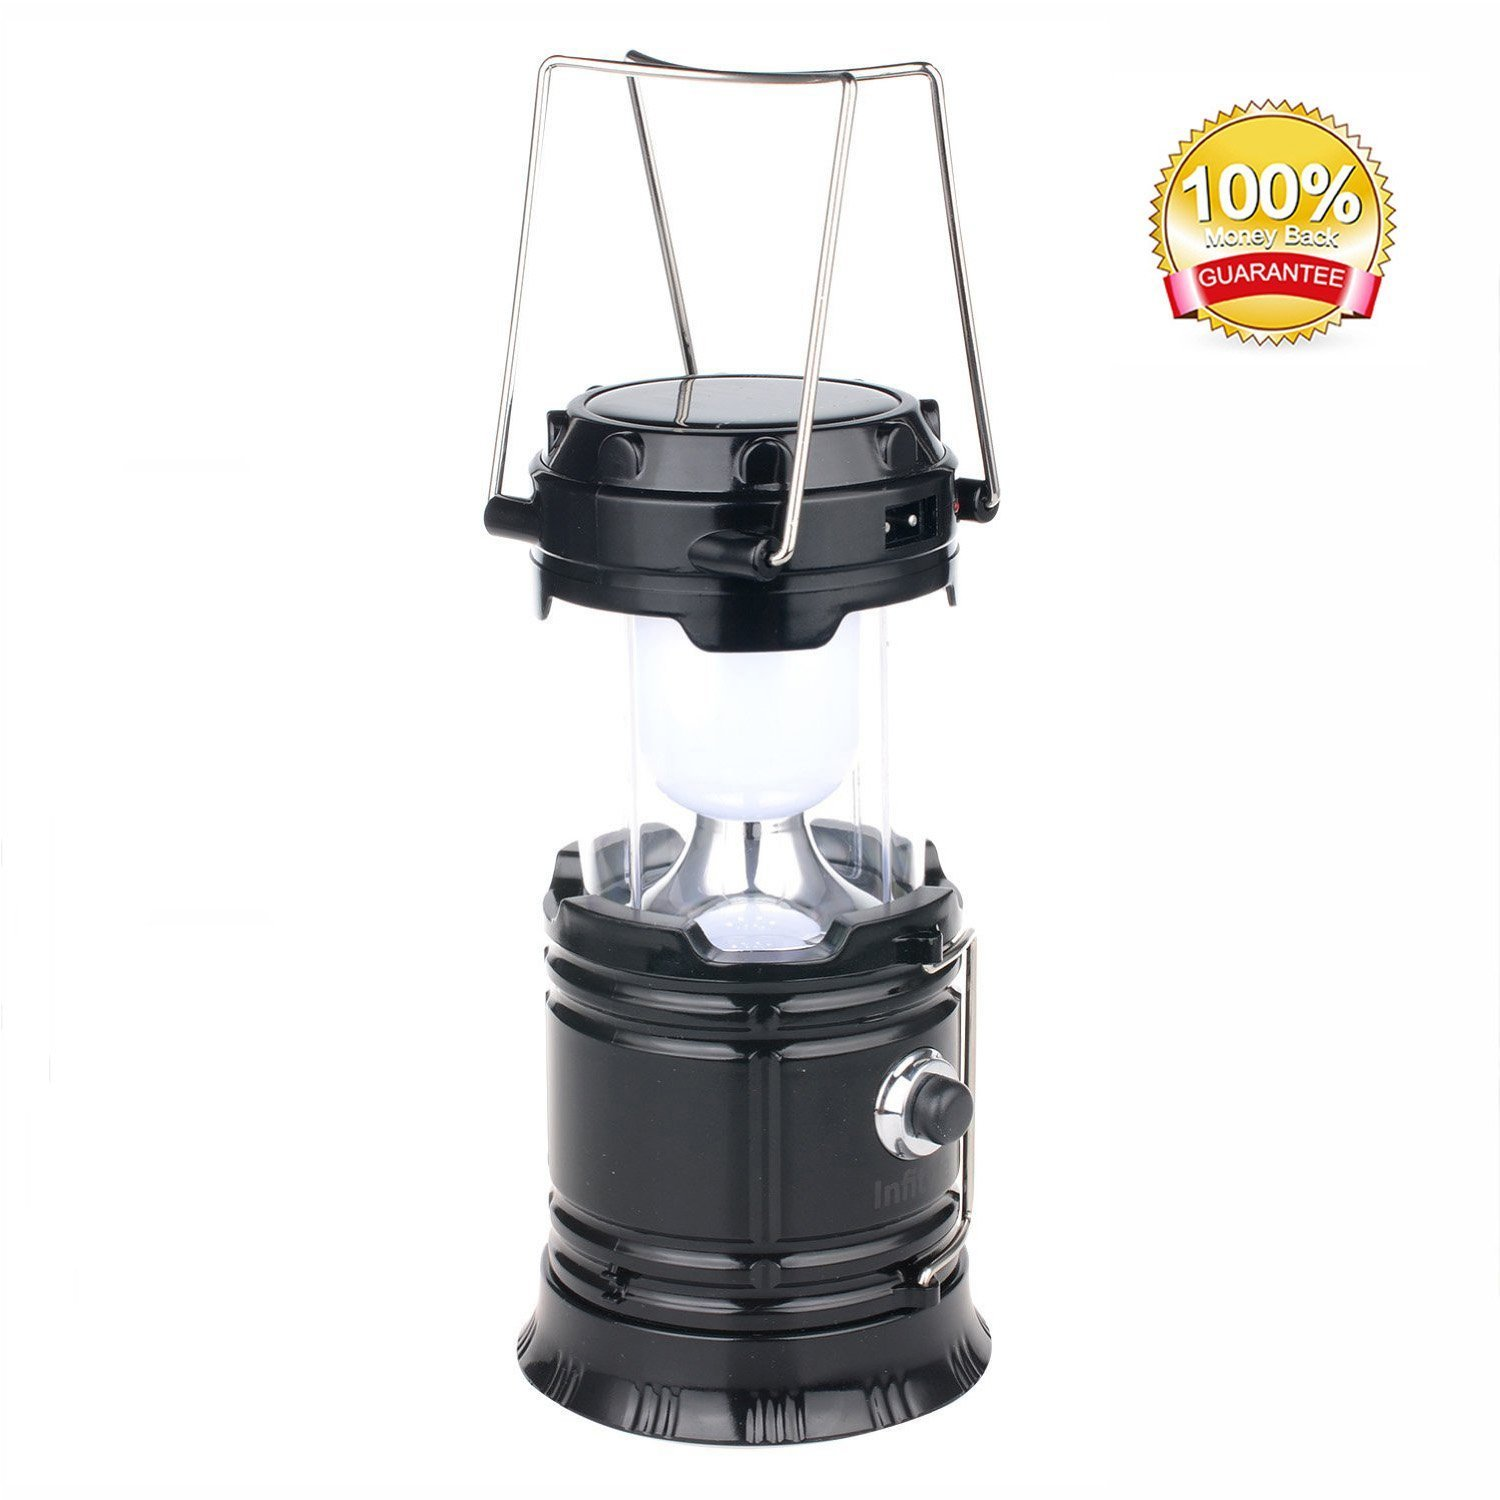 Delightful Solar Lantern: Camping Rechargeable LED Outdoor Lamp Flashlight Brightest  Hanging Camp Pop Up Powered Best Collapsible Emergency Light With Battery  Built In ...